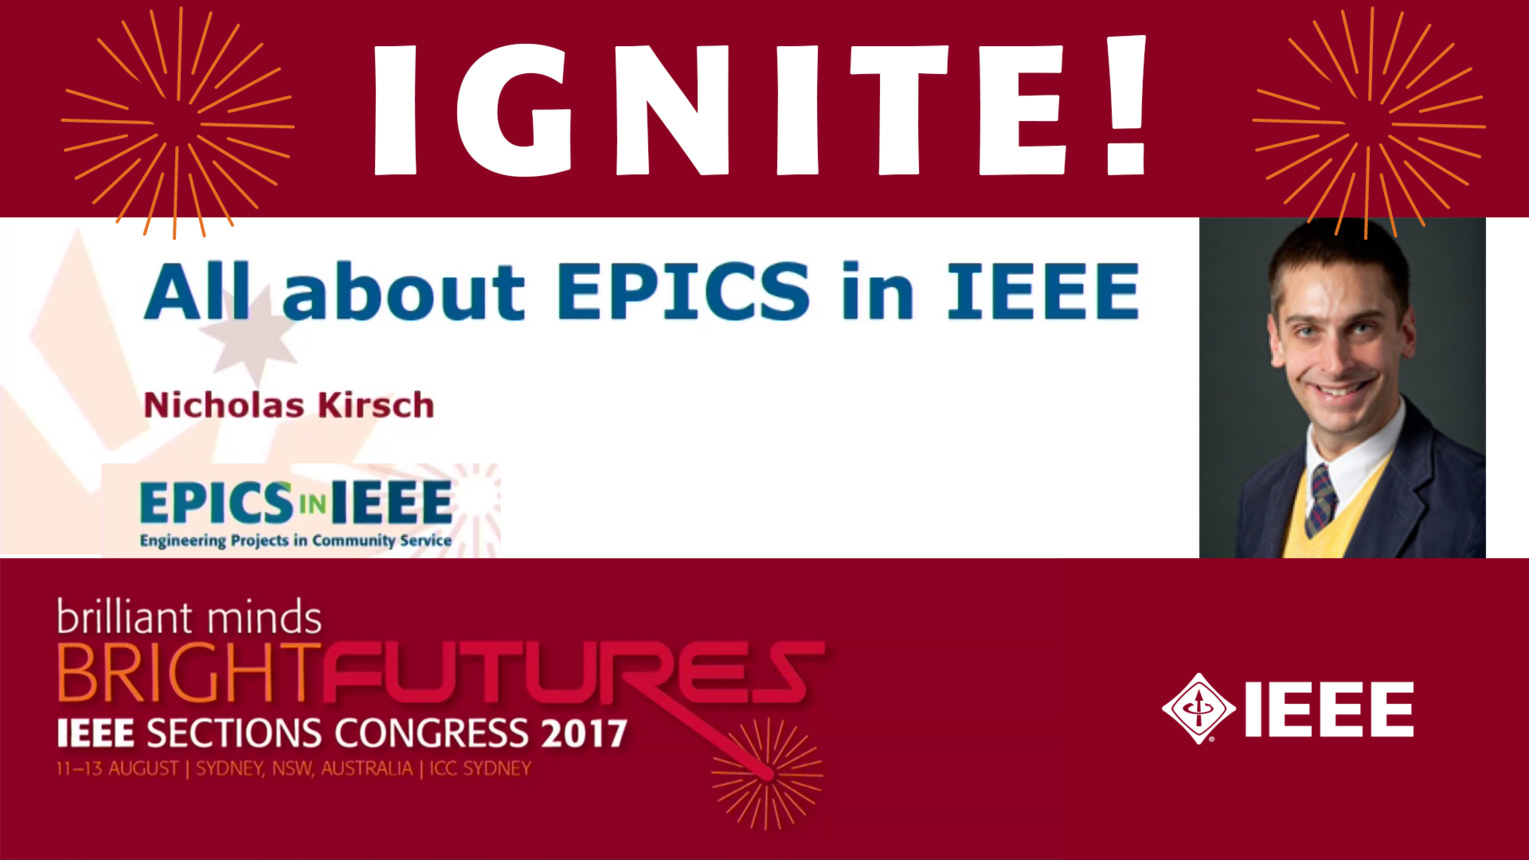 All about EPICS in IEEE - Nicholas Kirsch - Ignite: Sections Congress 2017